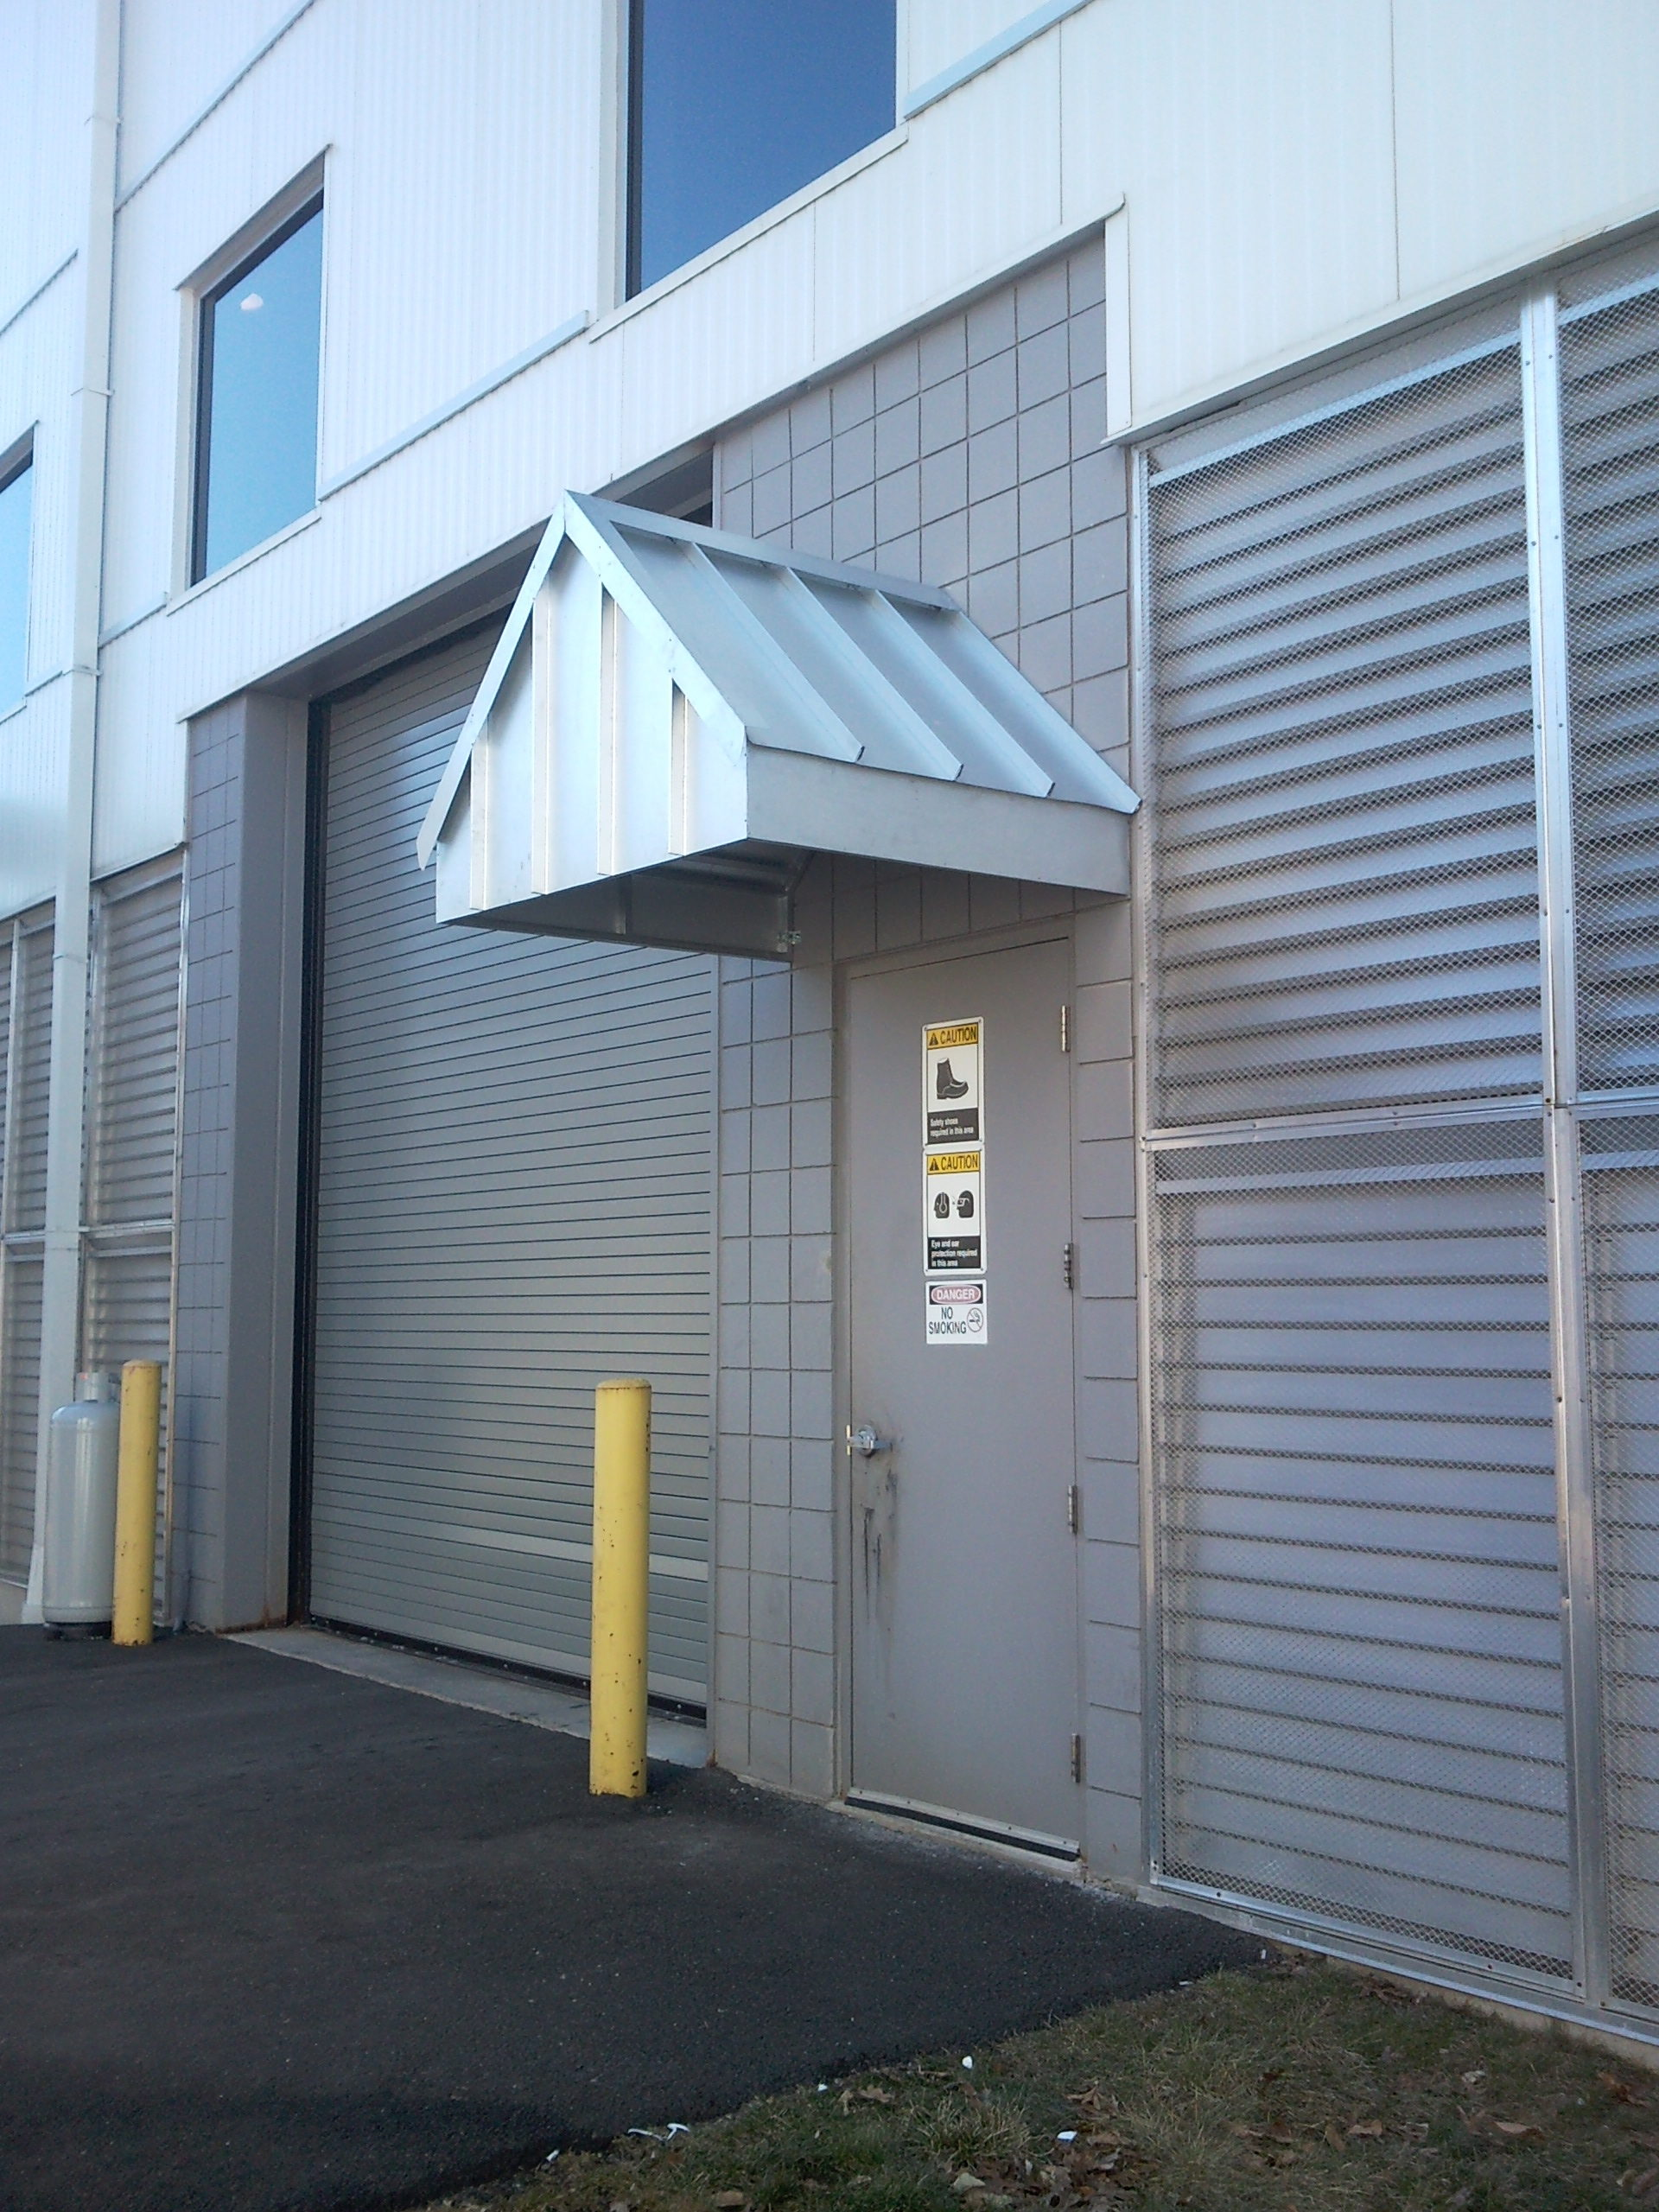 louisville awnings sheet ky awning roofing commercial dunn metal